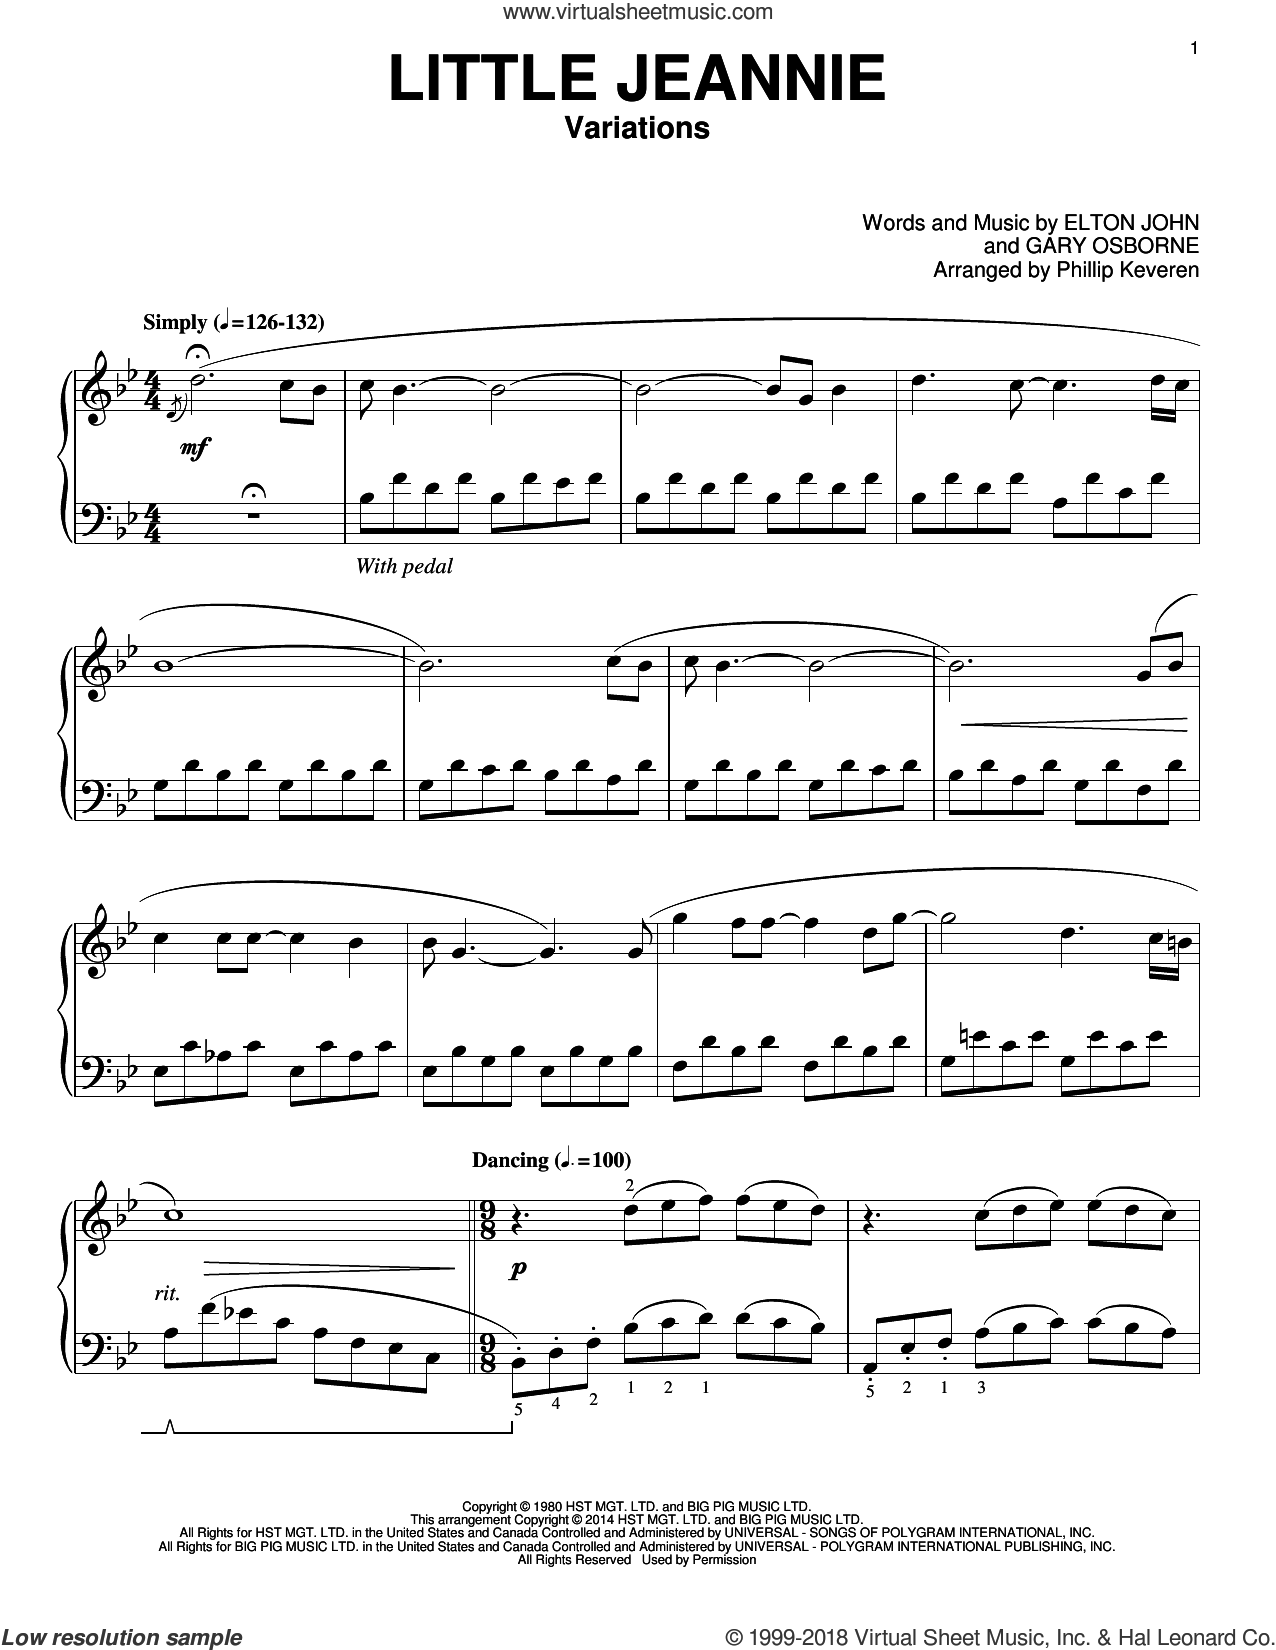 Little Jeannie sheet music for piano solo by Gary Osborne